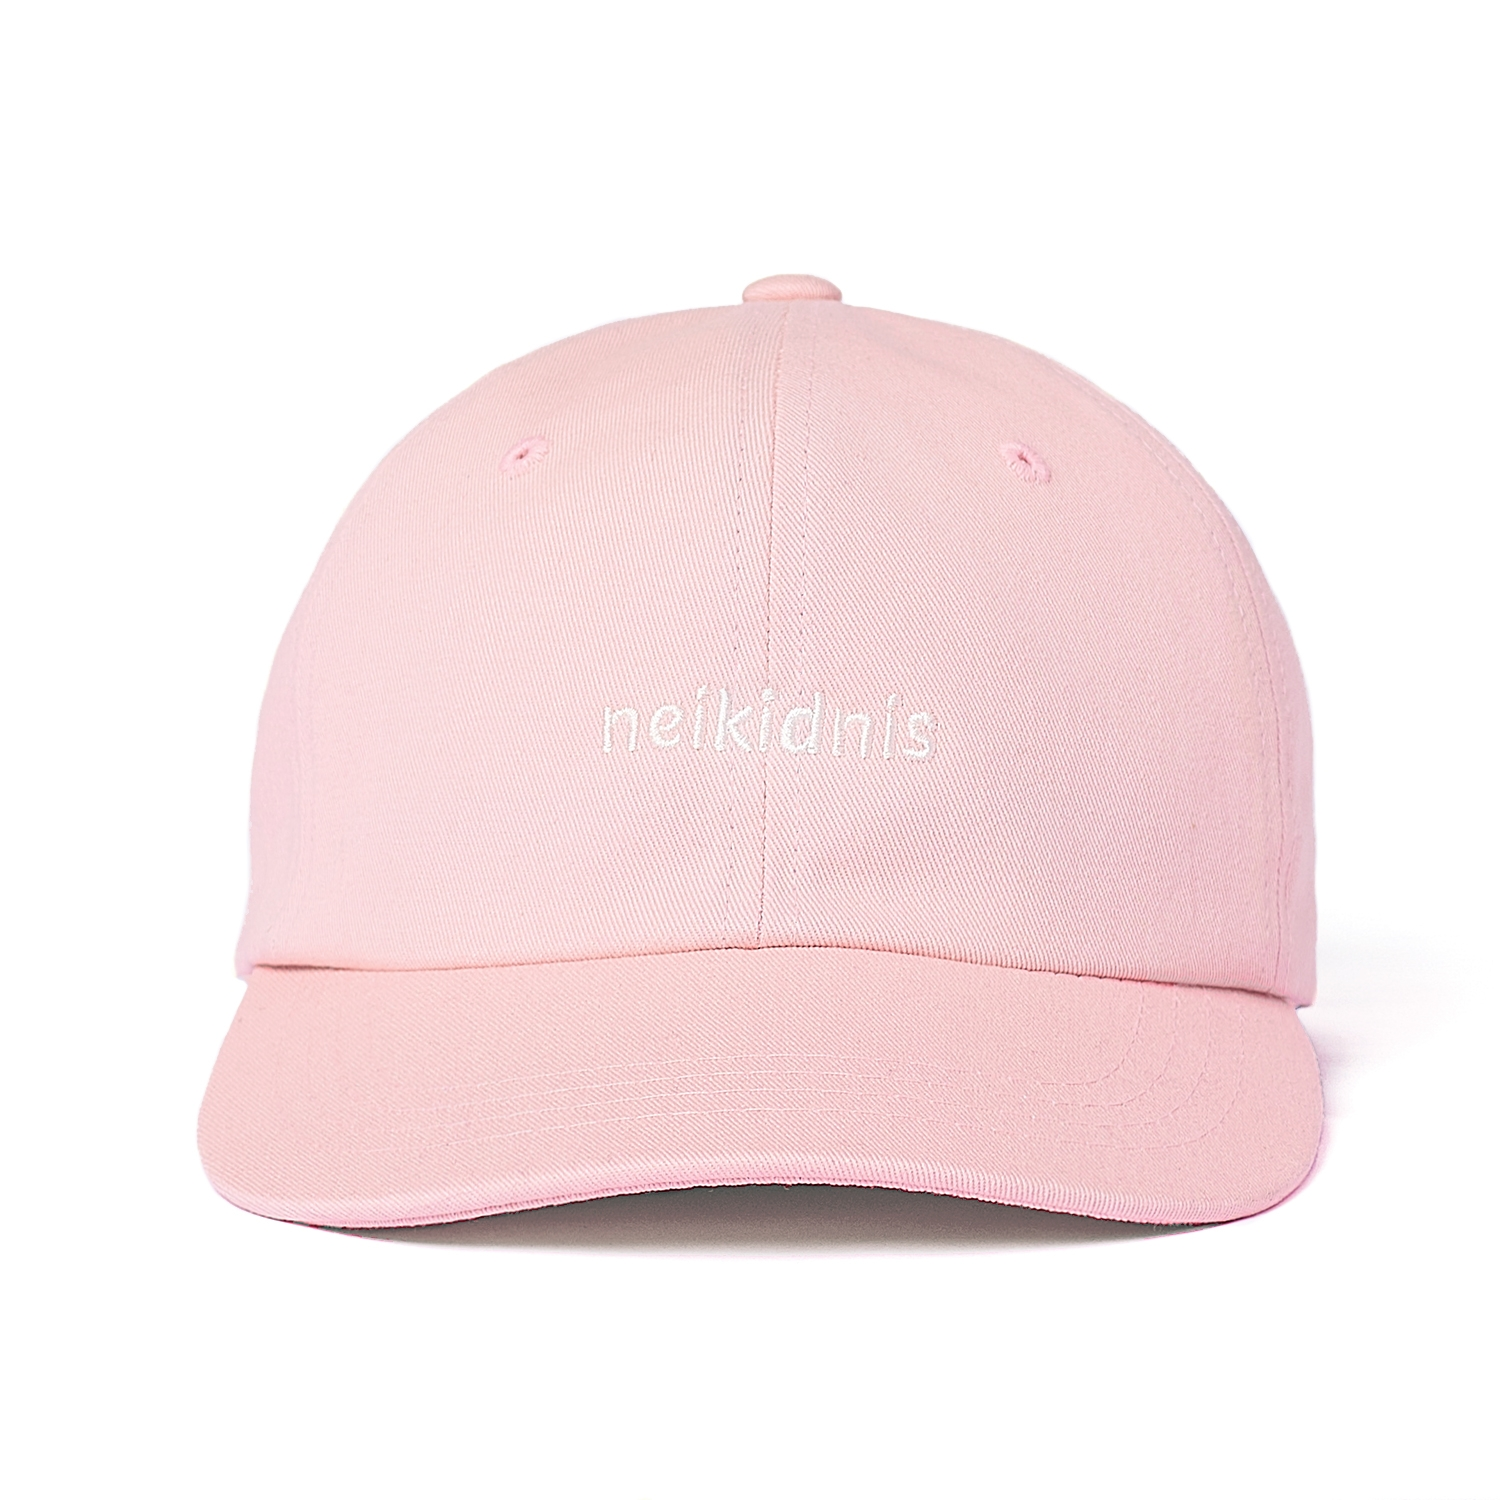 COTTON 6P CAP / PINK